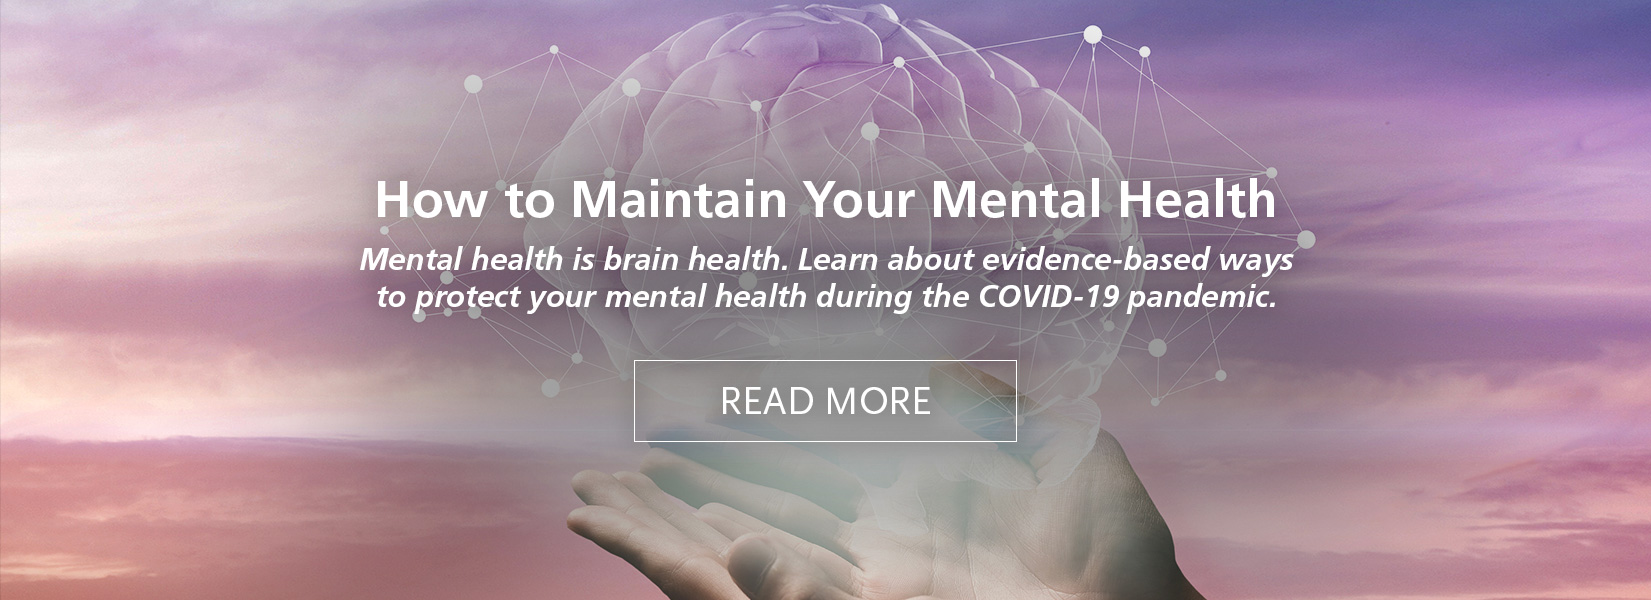 How to Maintain Your Mental Health During the COVID-19 Pandemic